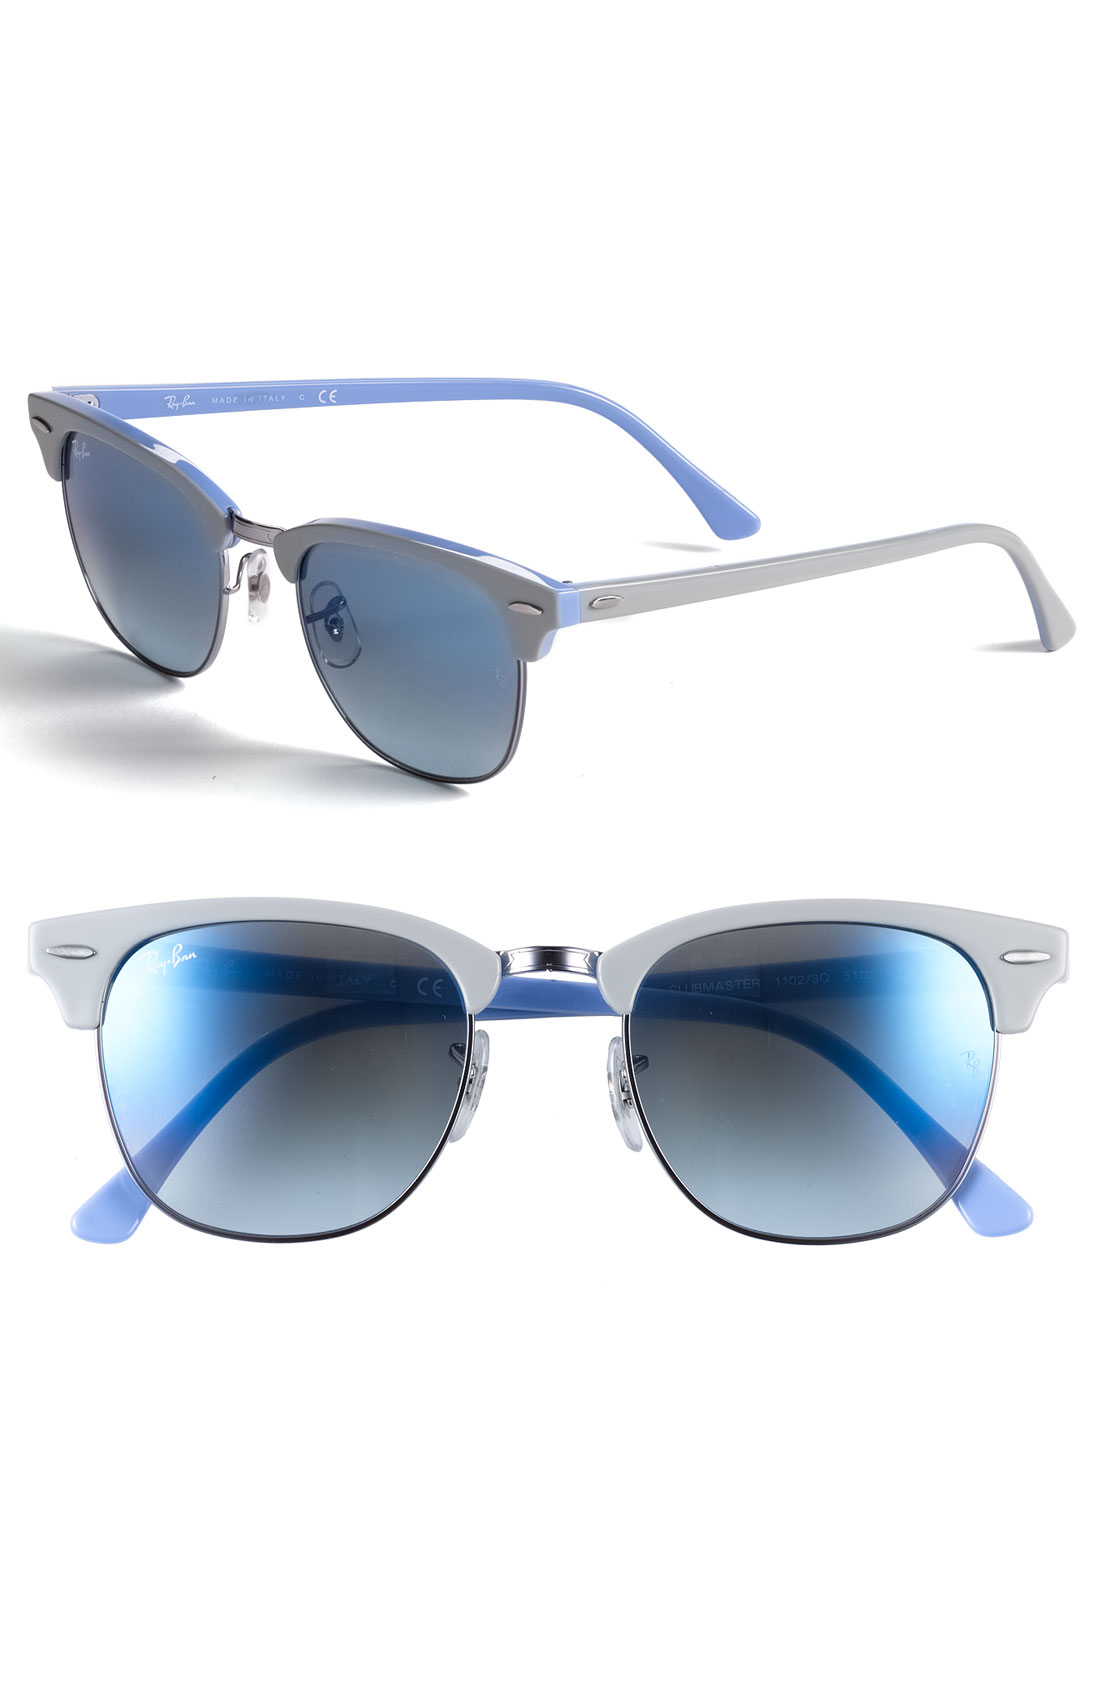 ray ban clubmaster 51mm sunglasses in blue grey on blue. Black Bedroom Furniture Sets. Home Design Ideas